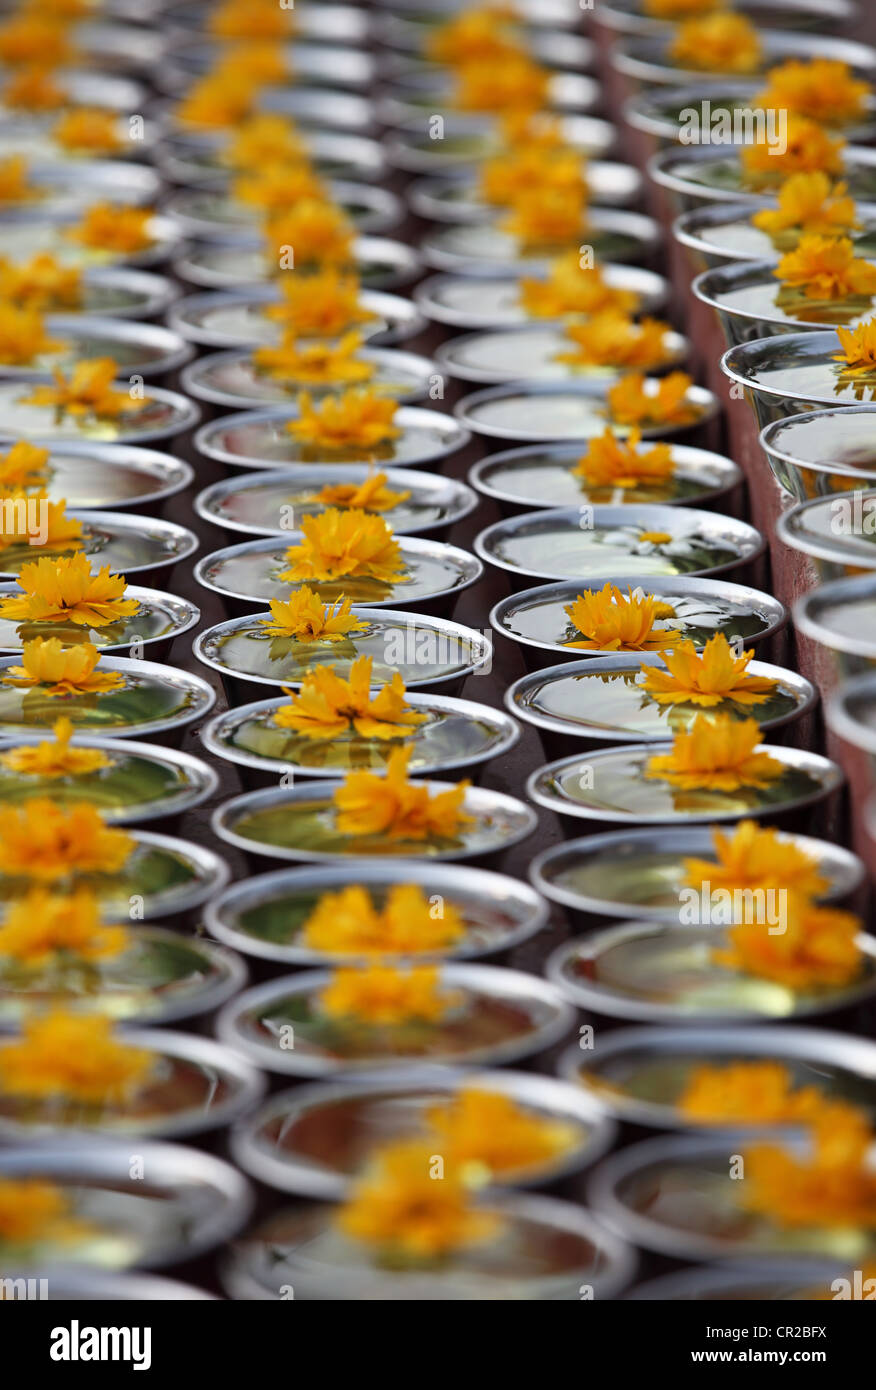 Buddhist water bowls used for rituals Bodhanath Nepal - Stock Image